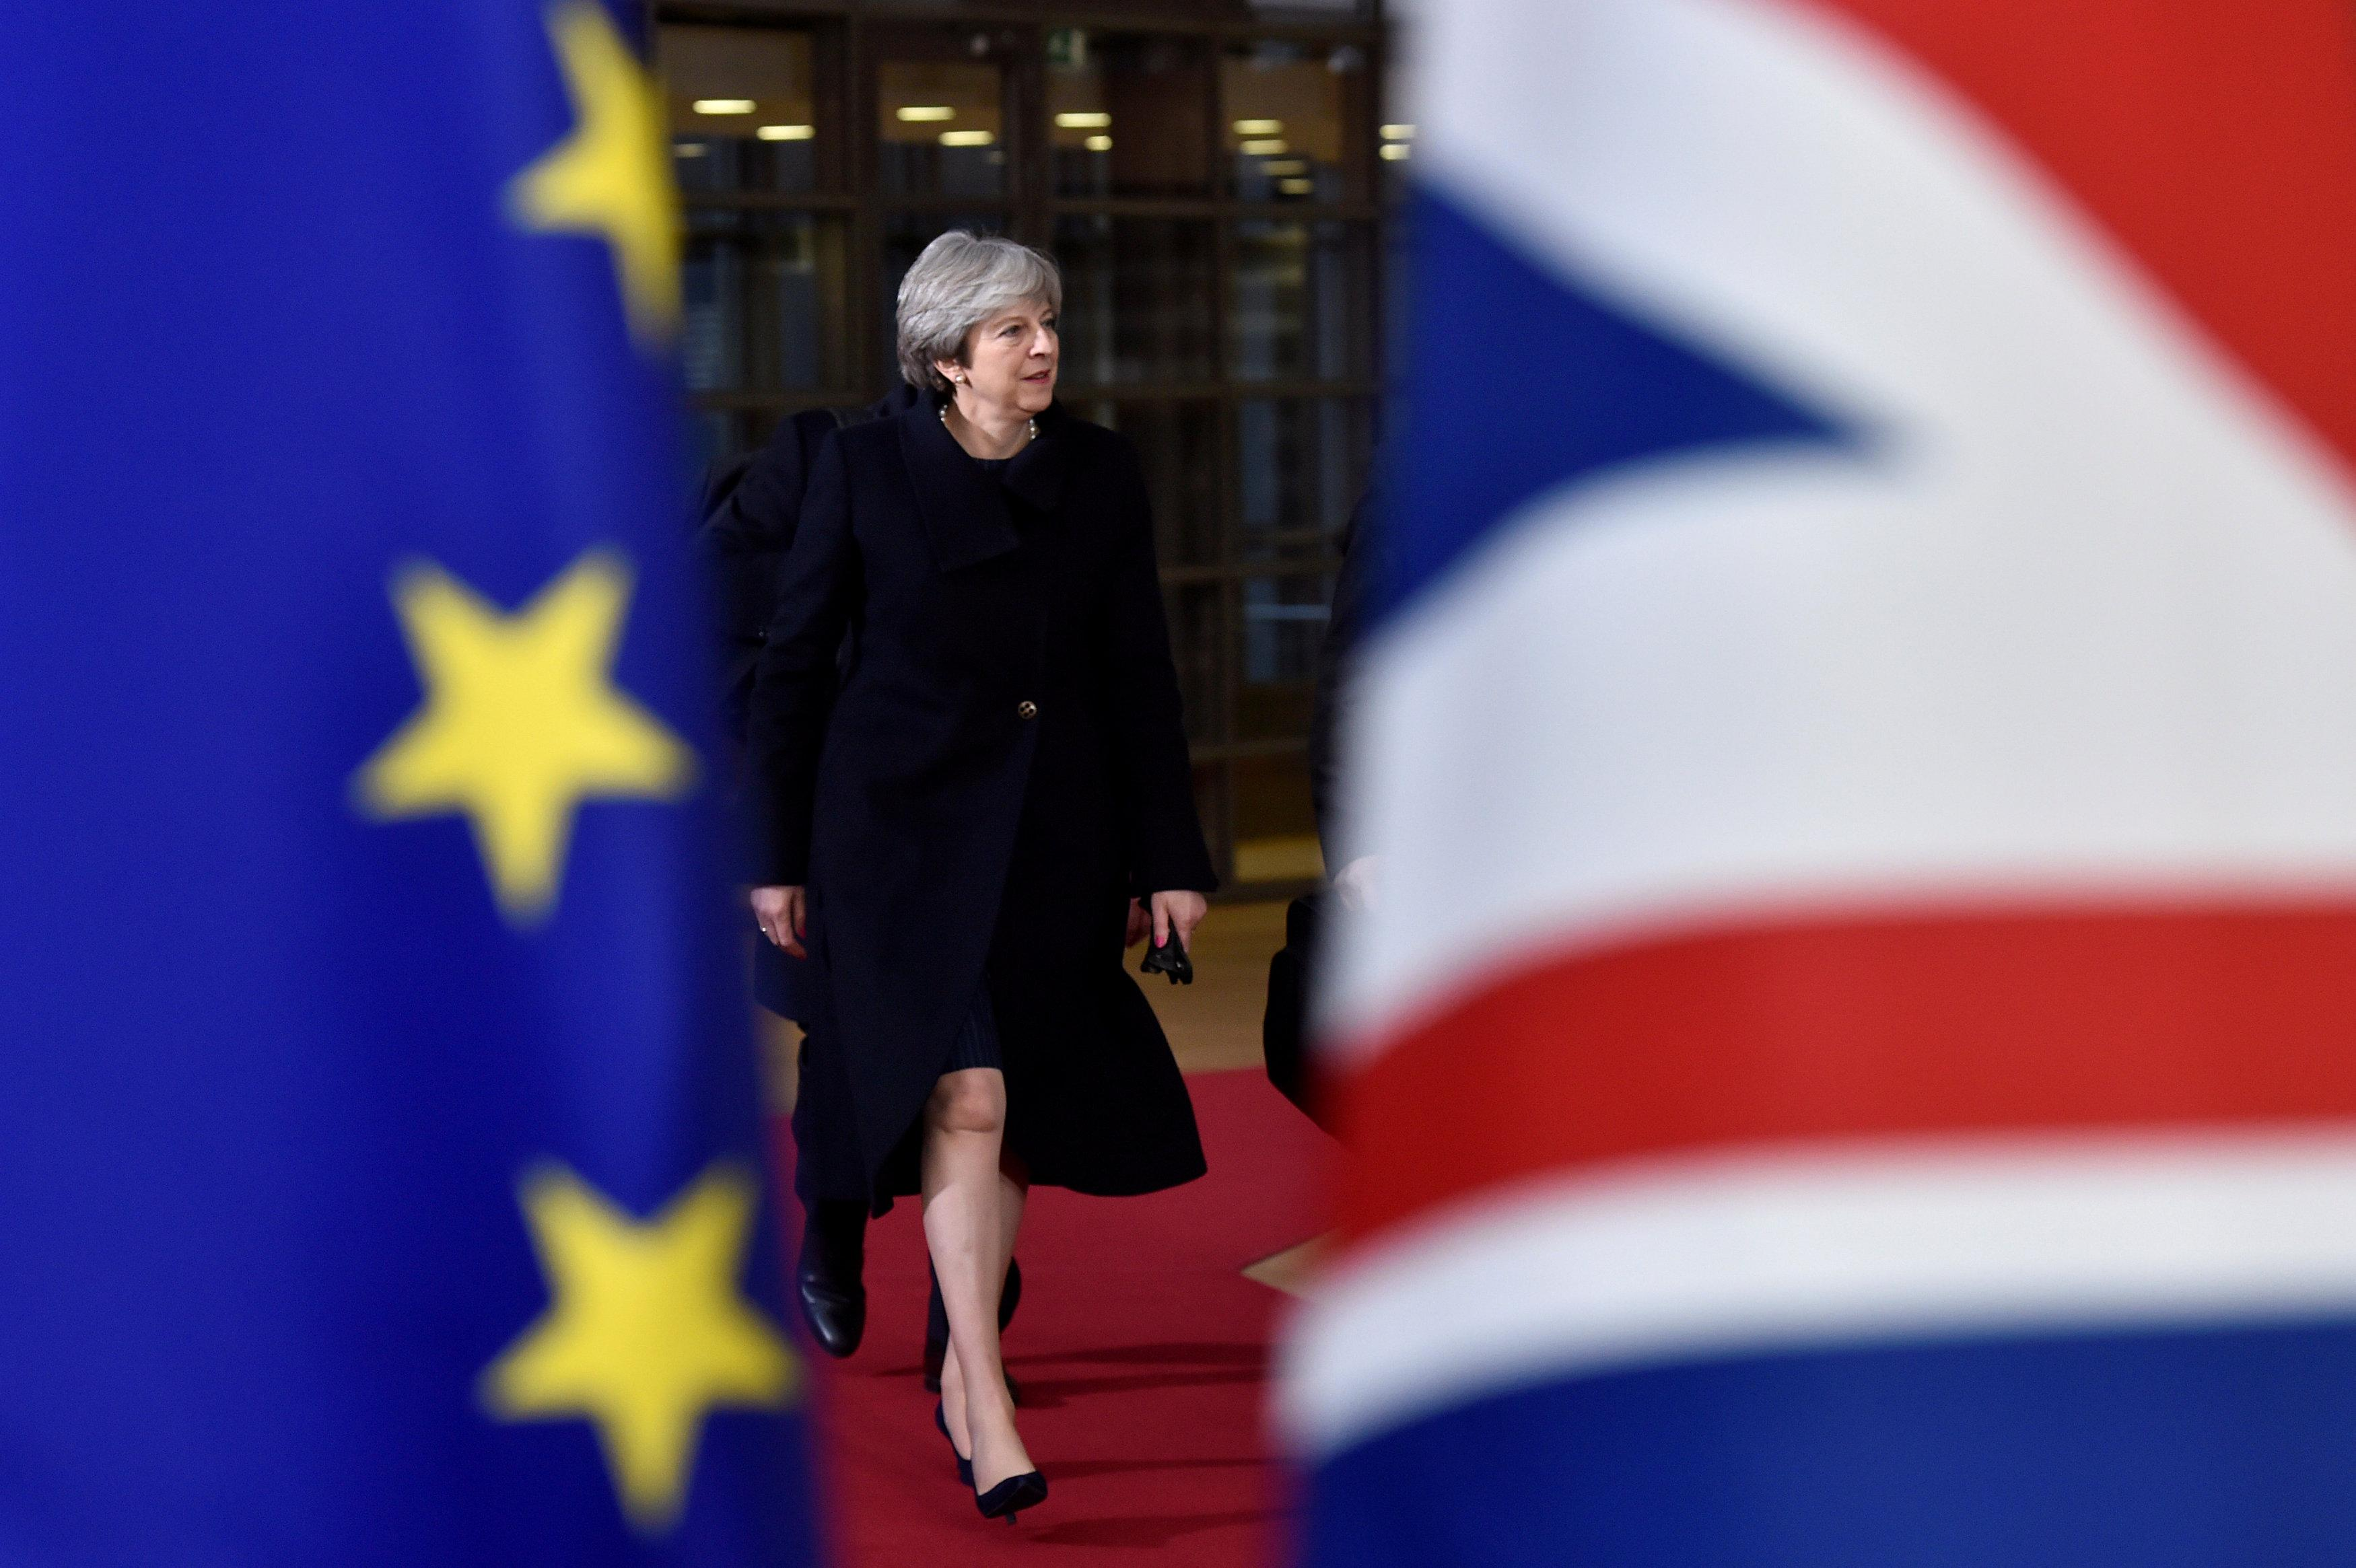 British Prime Minister Theresa May arrives for the EU summit in Brussels, Belgium, December 14, 2017. Eric Vidal